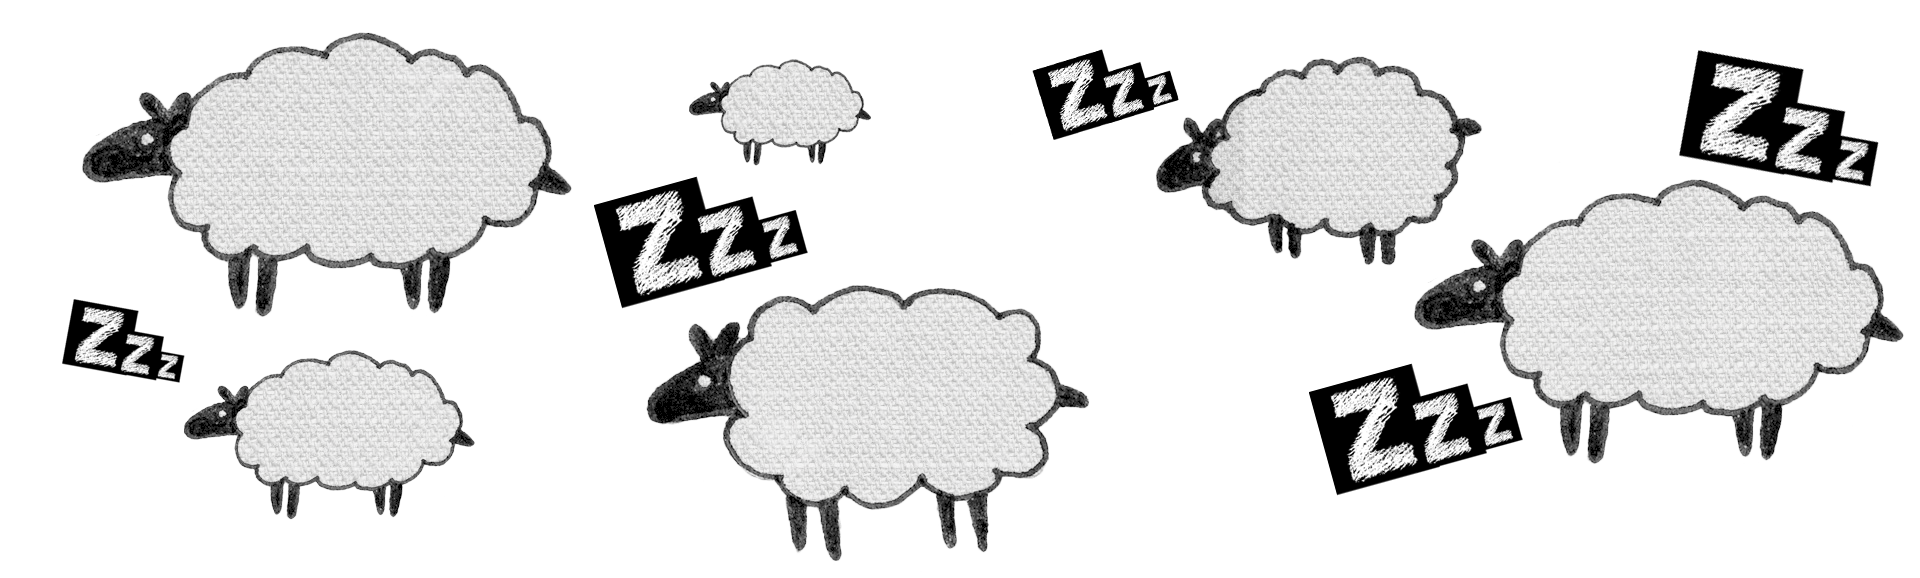 sleep sheep zzz